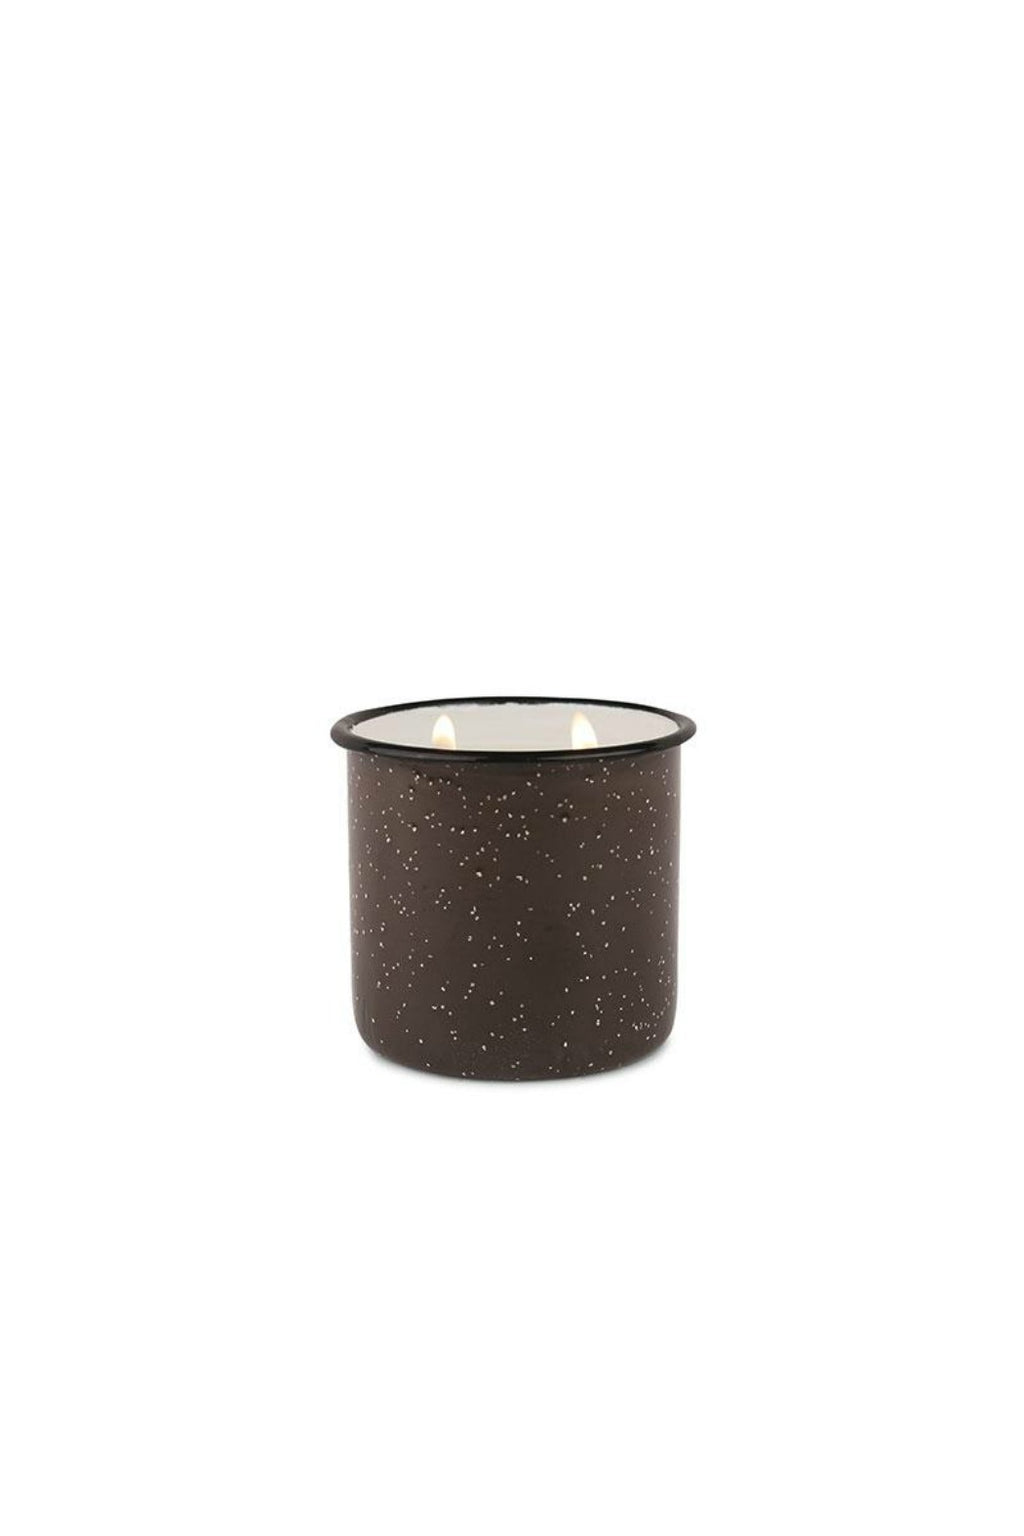 Paddywax Alpine Candle - Tobacco & Moss